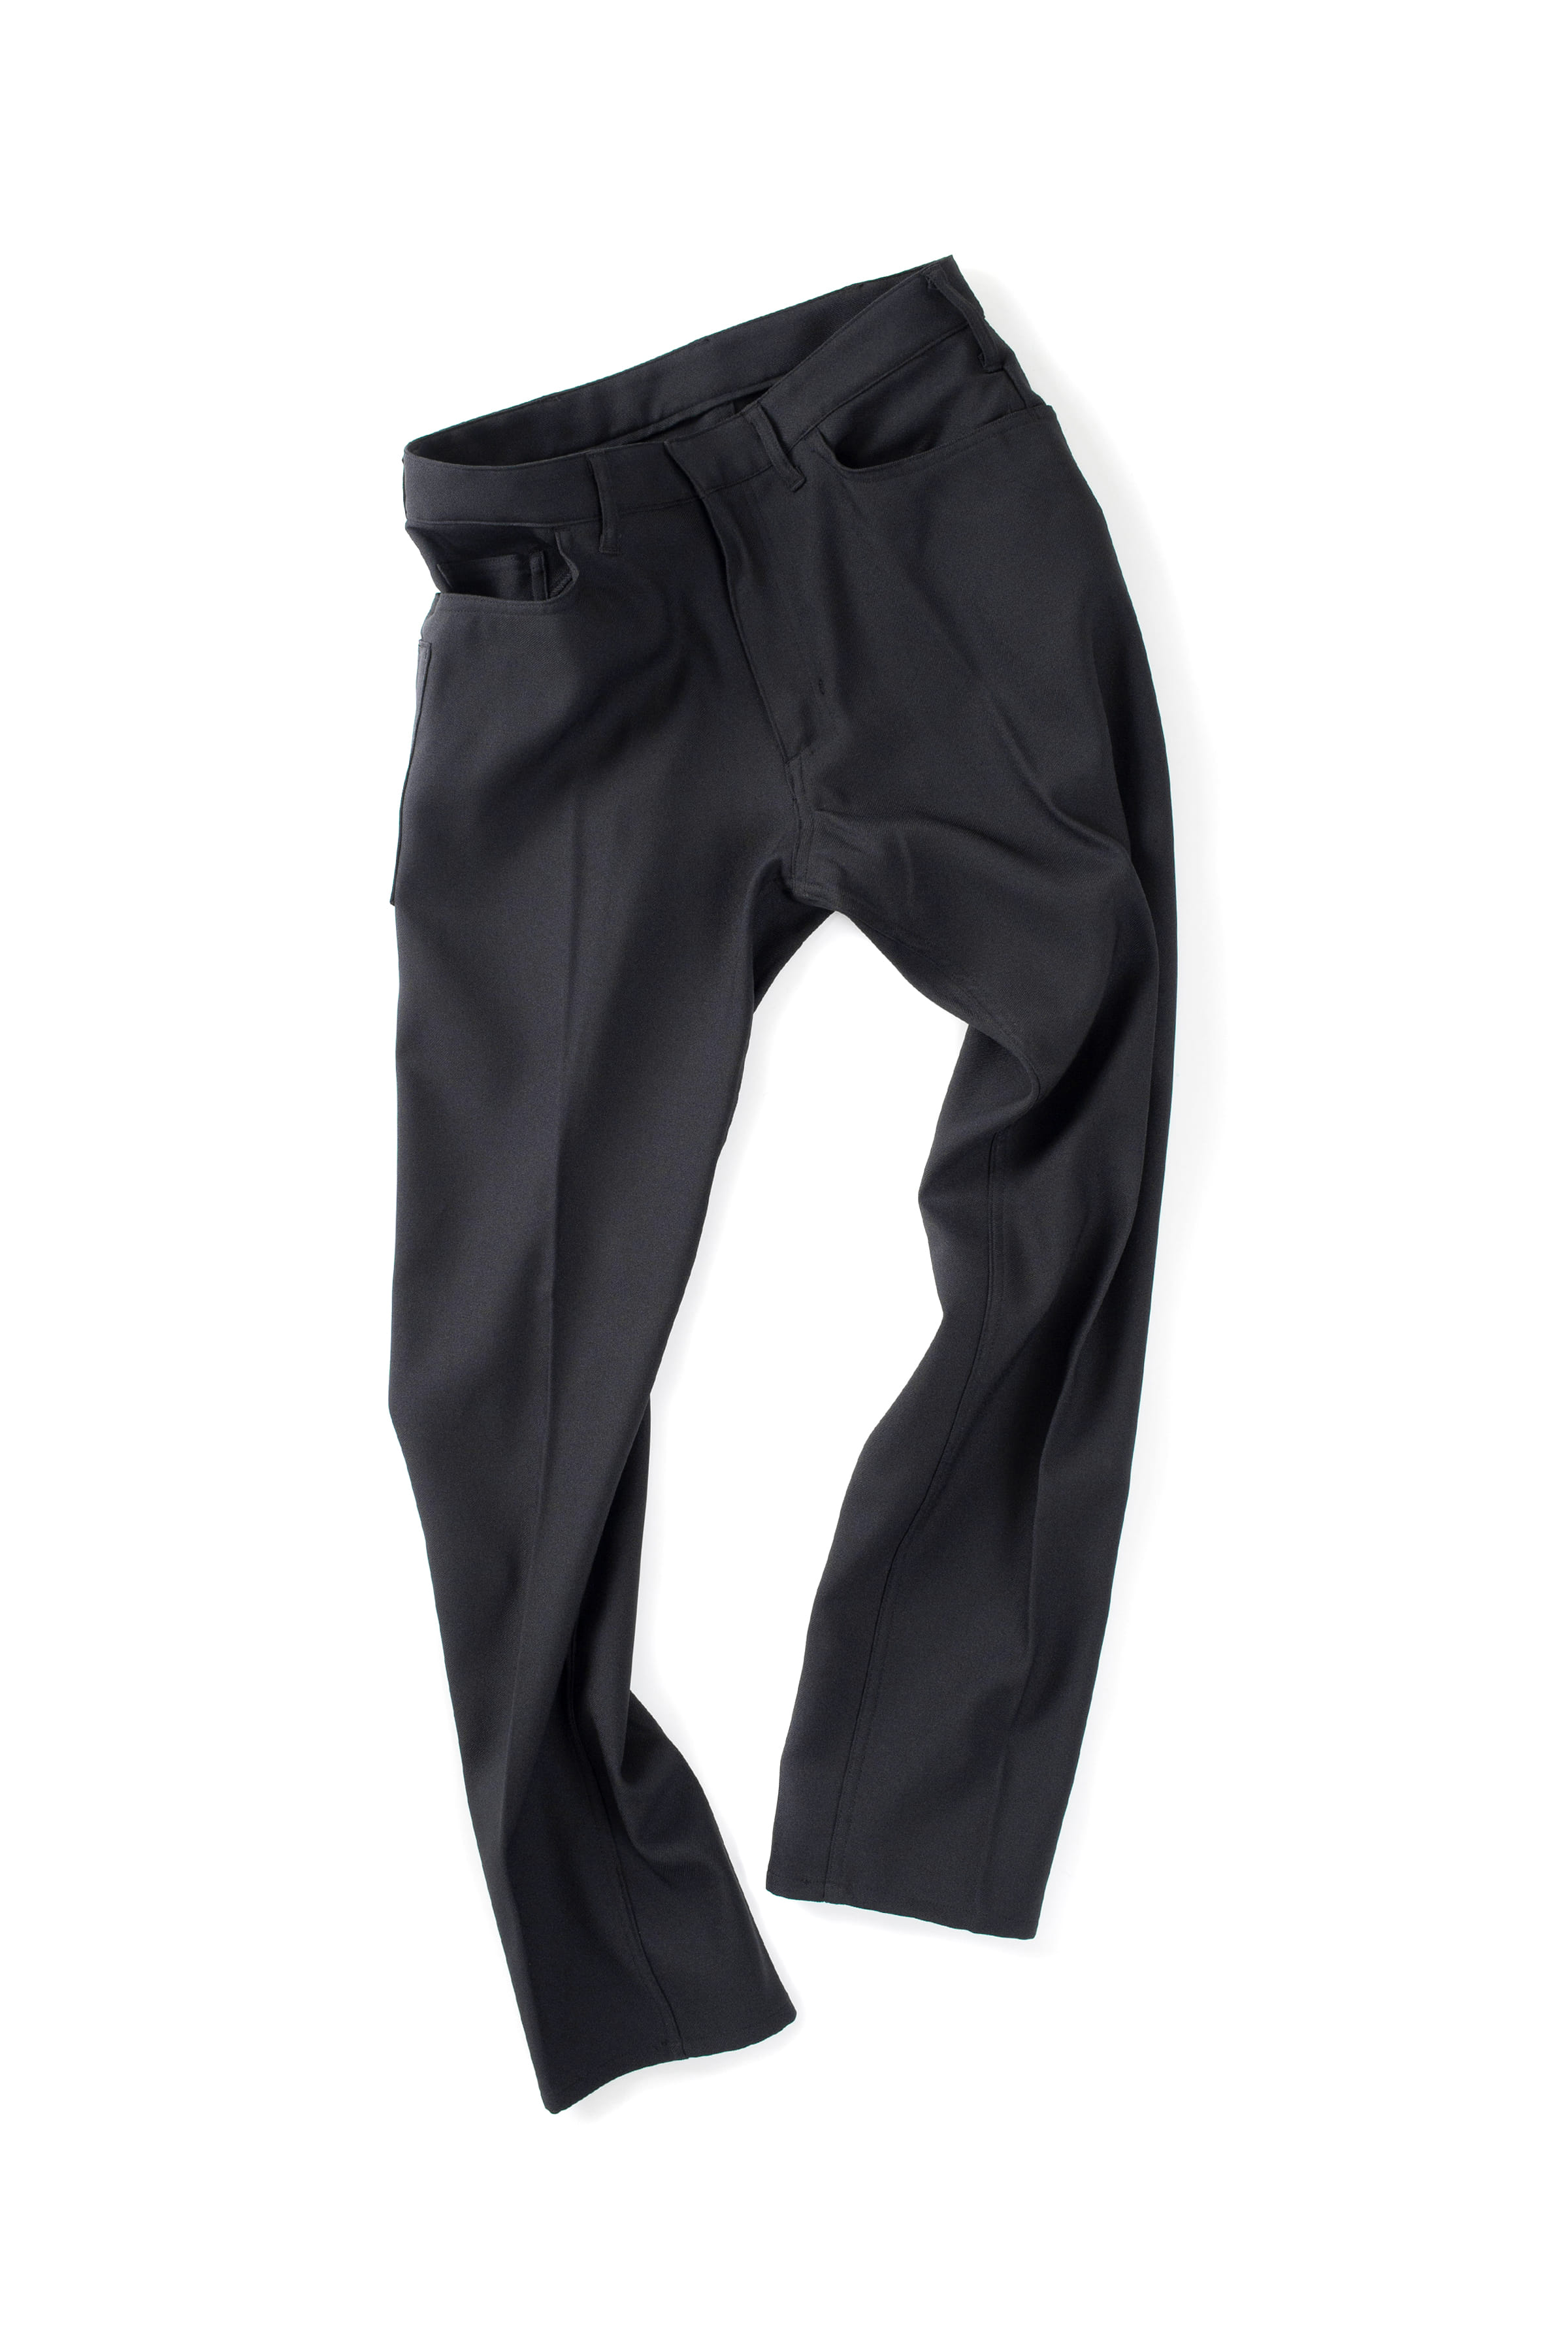 CLAMP : Sta Prest Pants (Black)